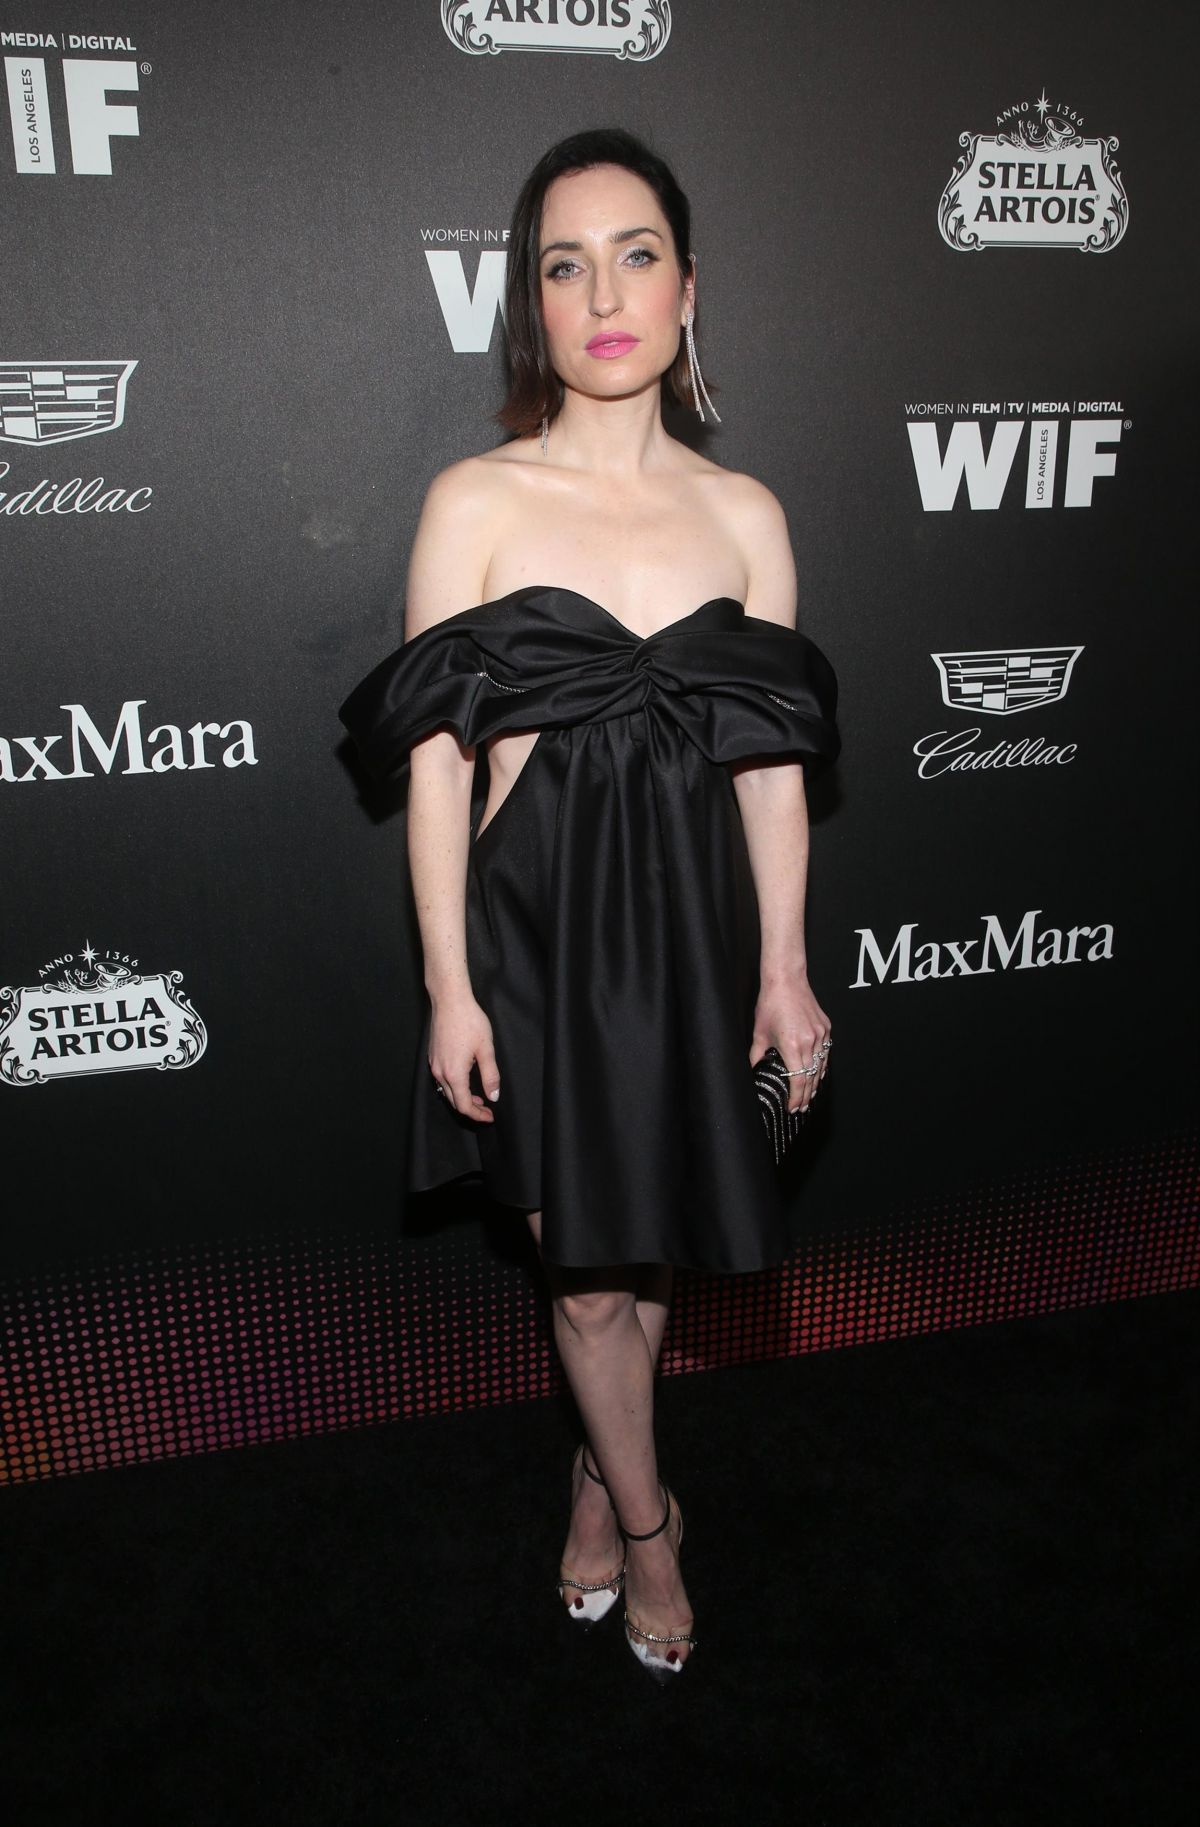 ZOE LISTER-JONES at 13th Annual Women in Film Female Oscar Nominees Party in Hollywood 02/07 ...